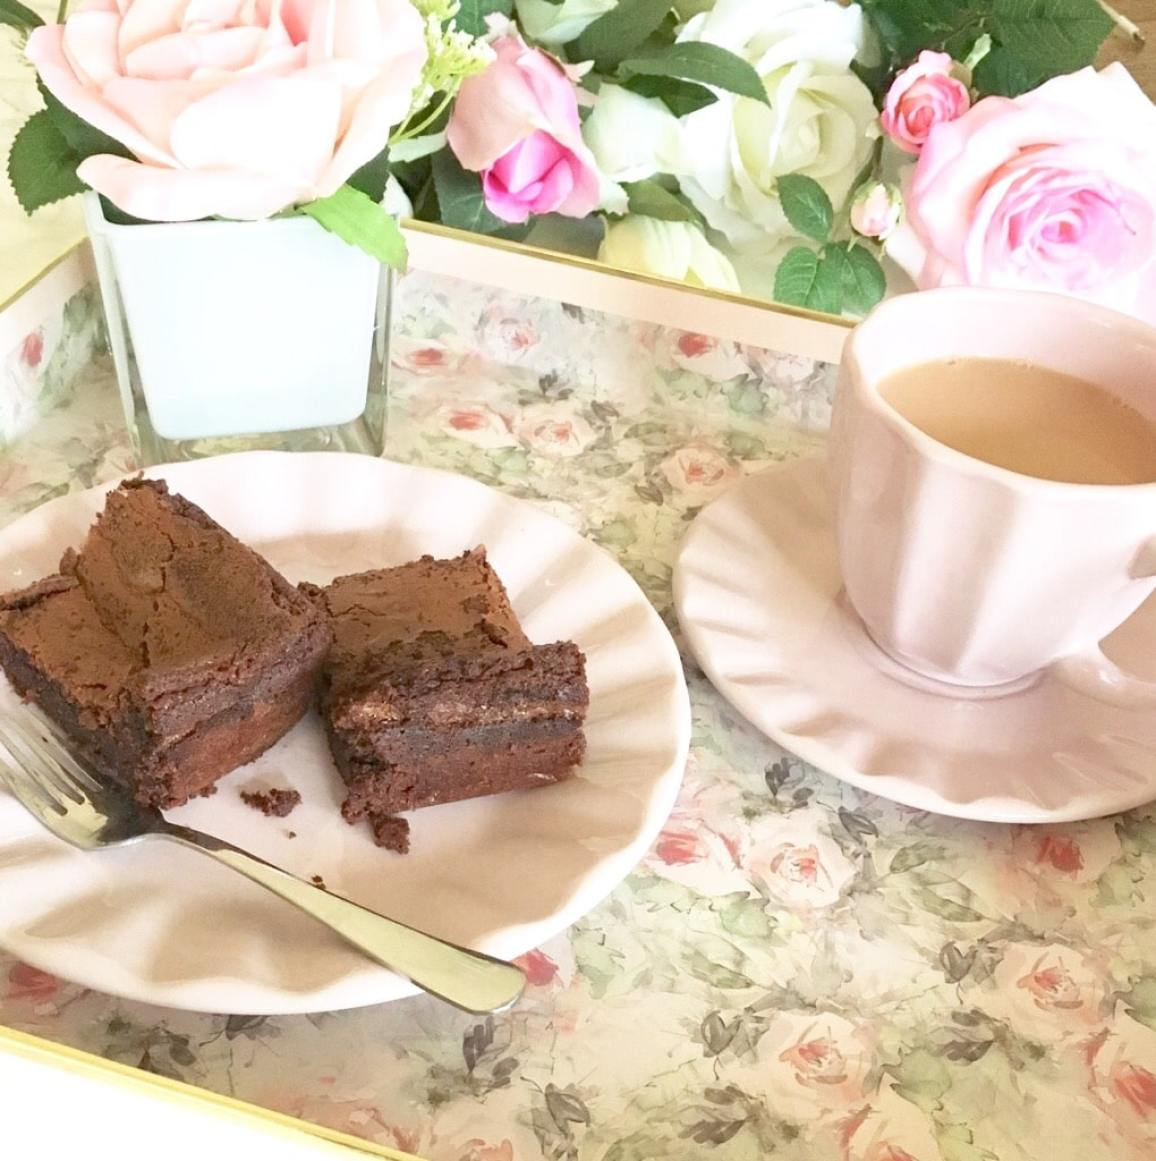 The finished Brownies. Served with a nice cup of tea. Delicious.